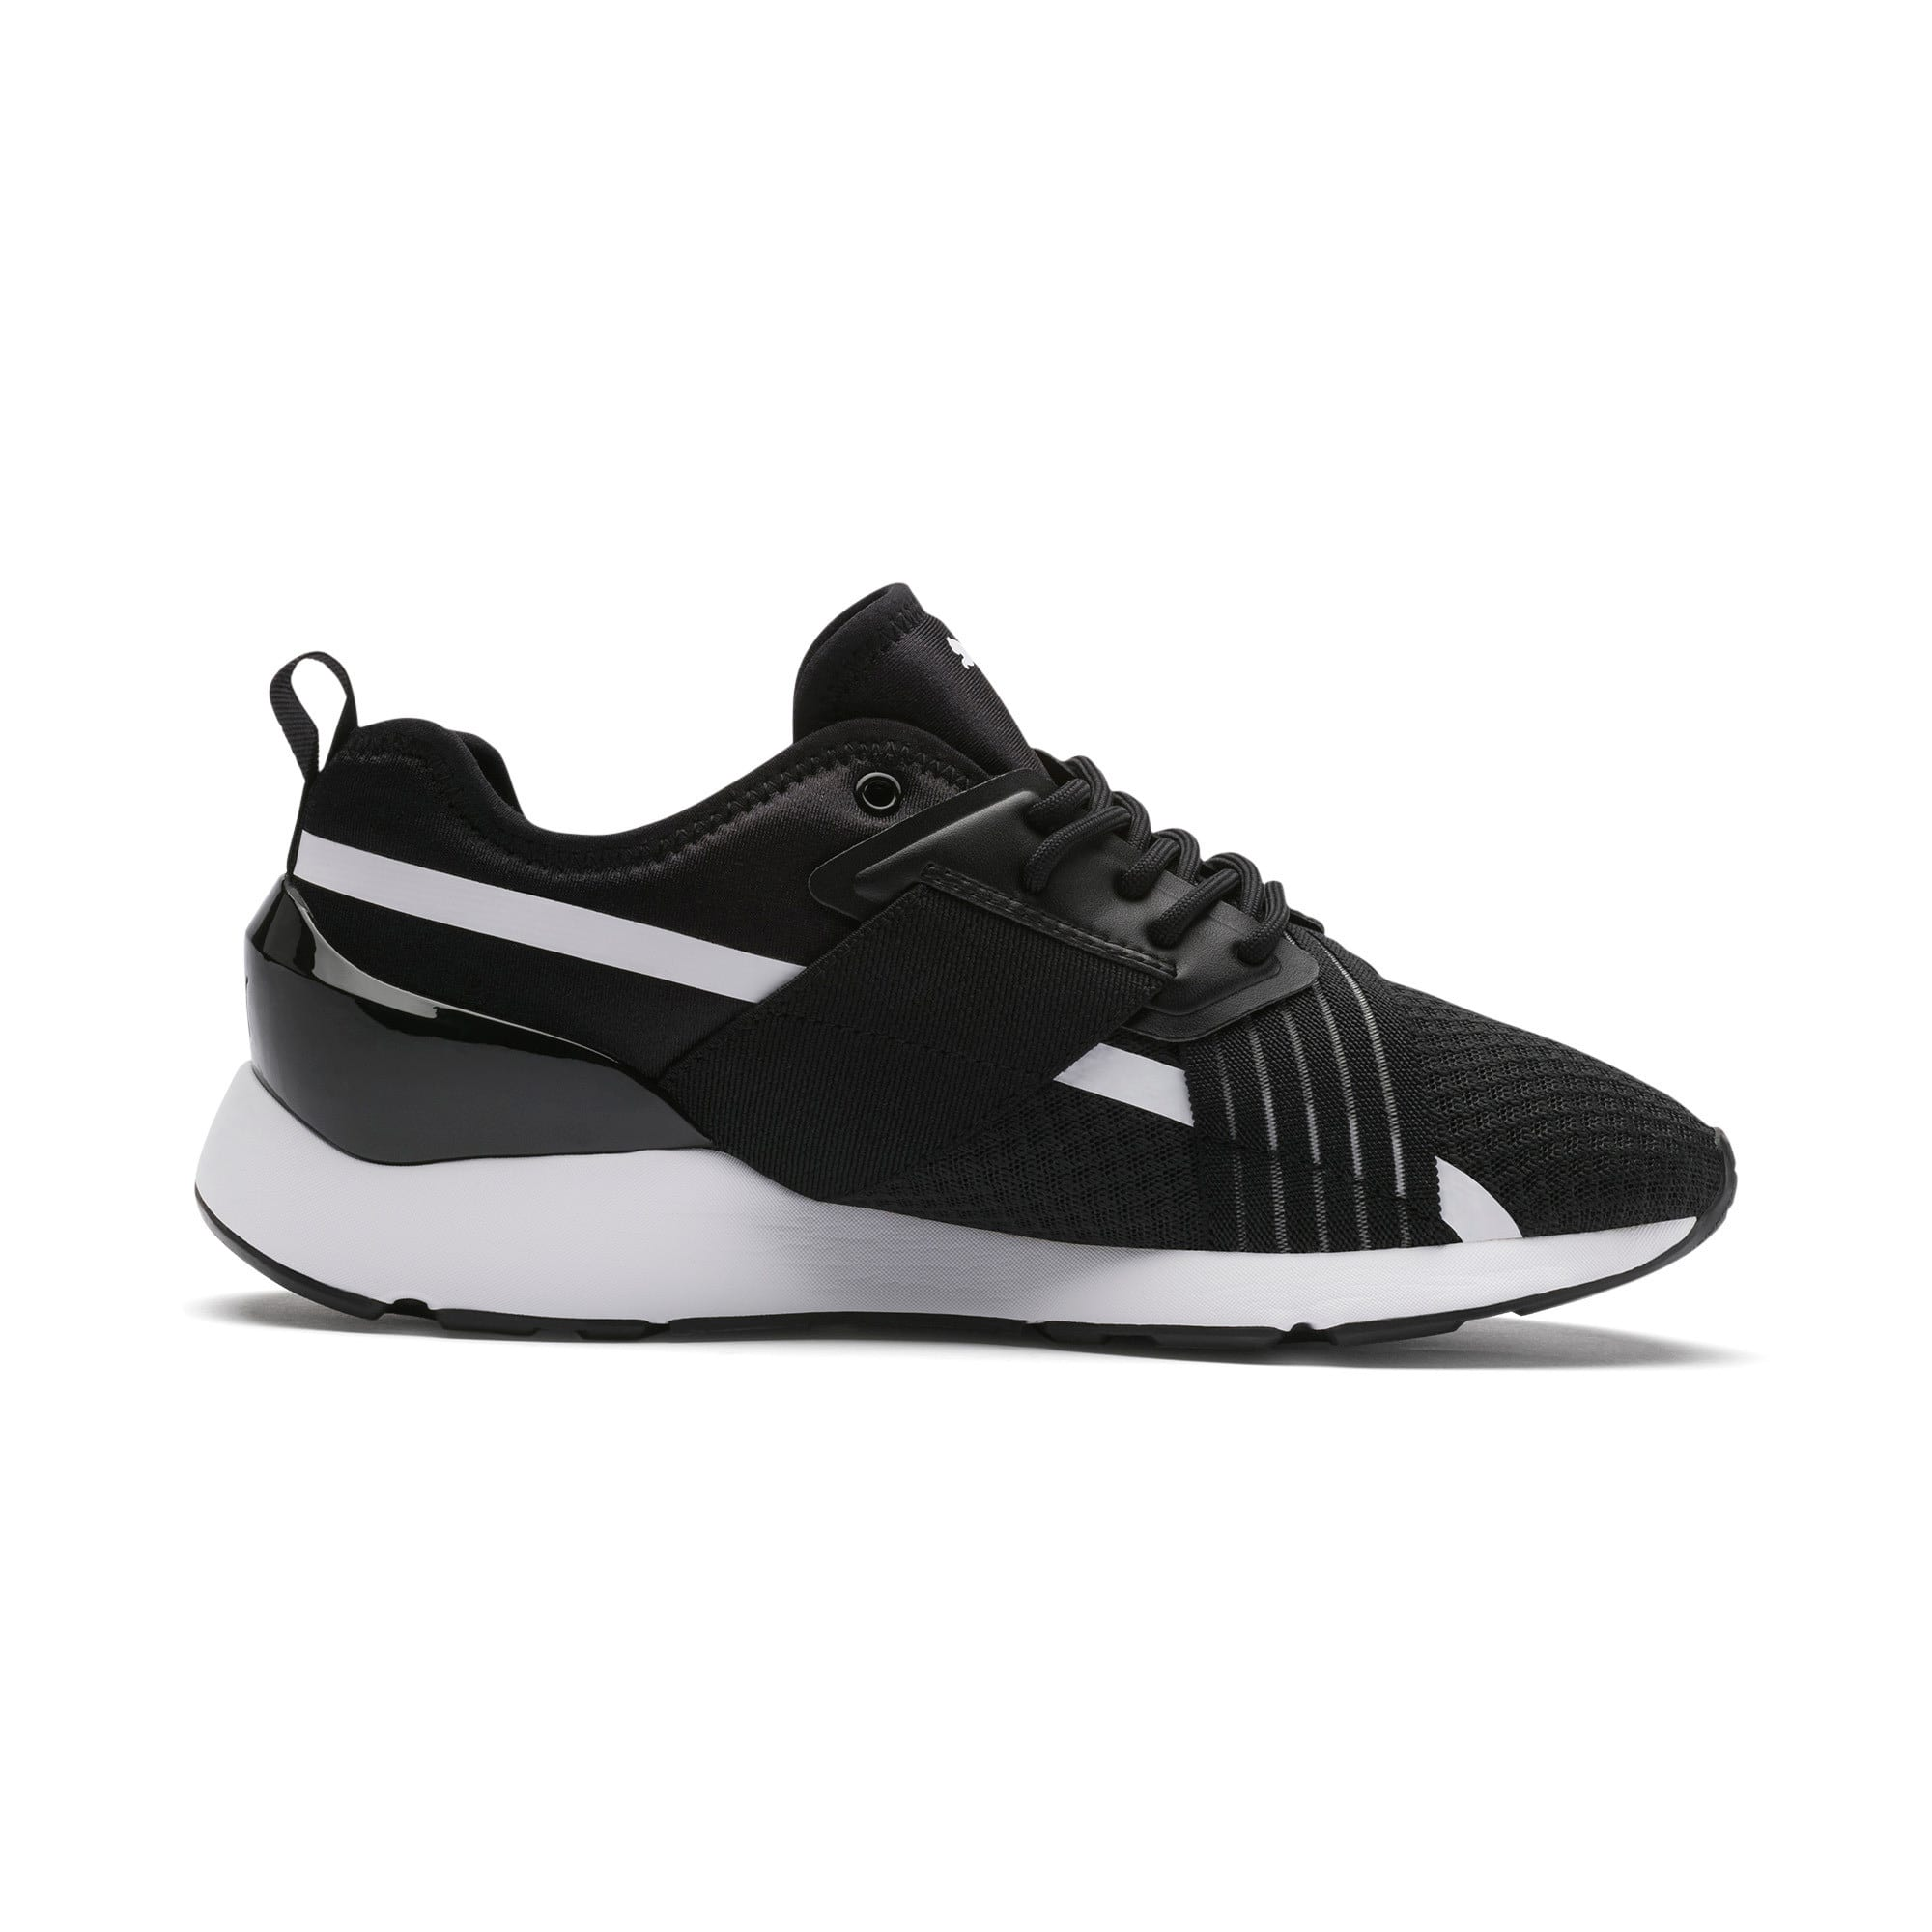 Muse X-2 Women's Sneakers, Puma Black-Puma White, large